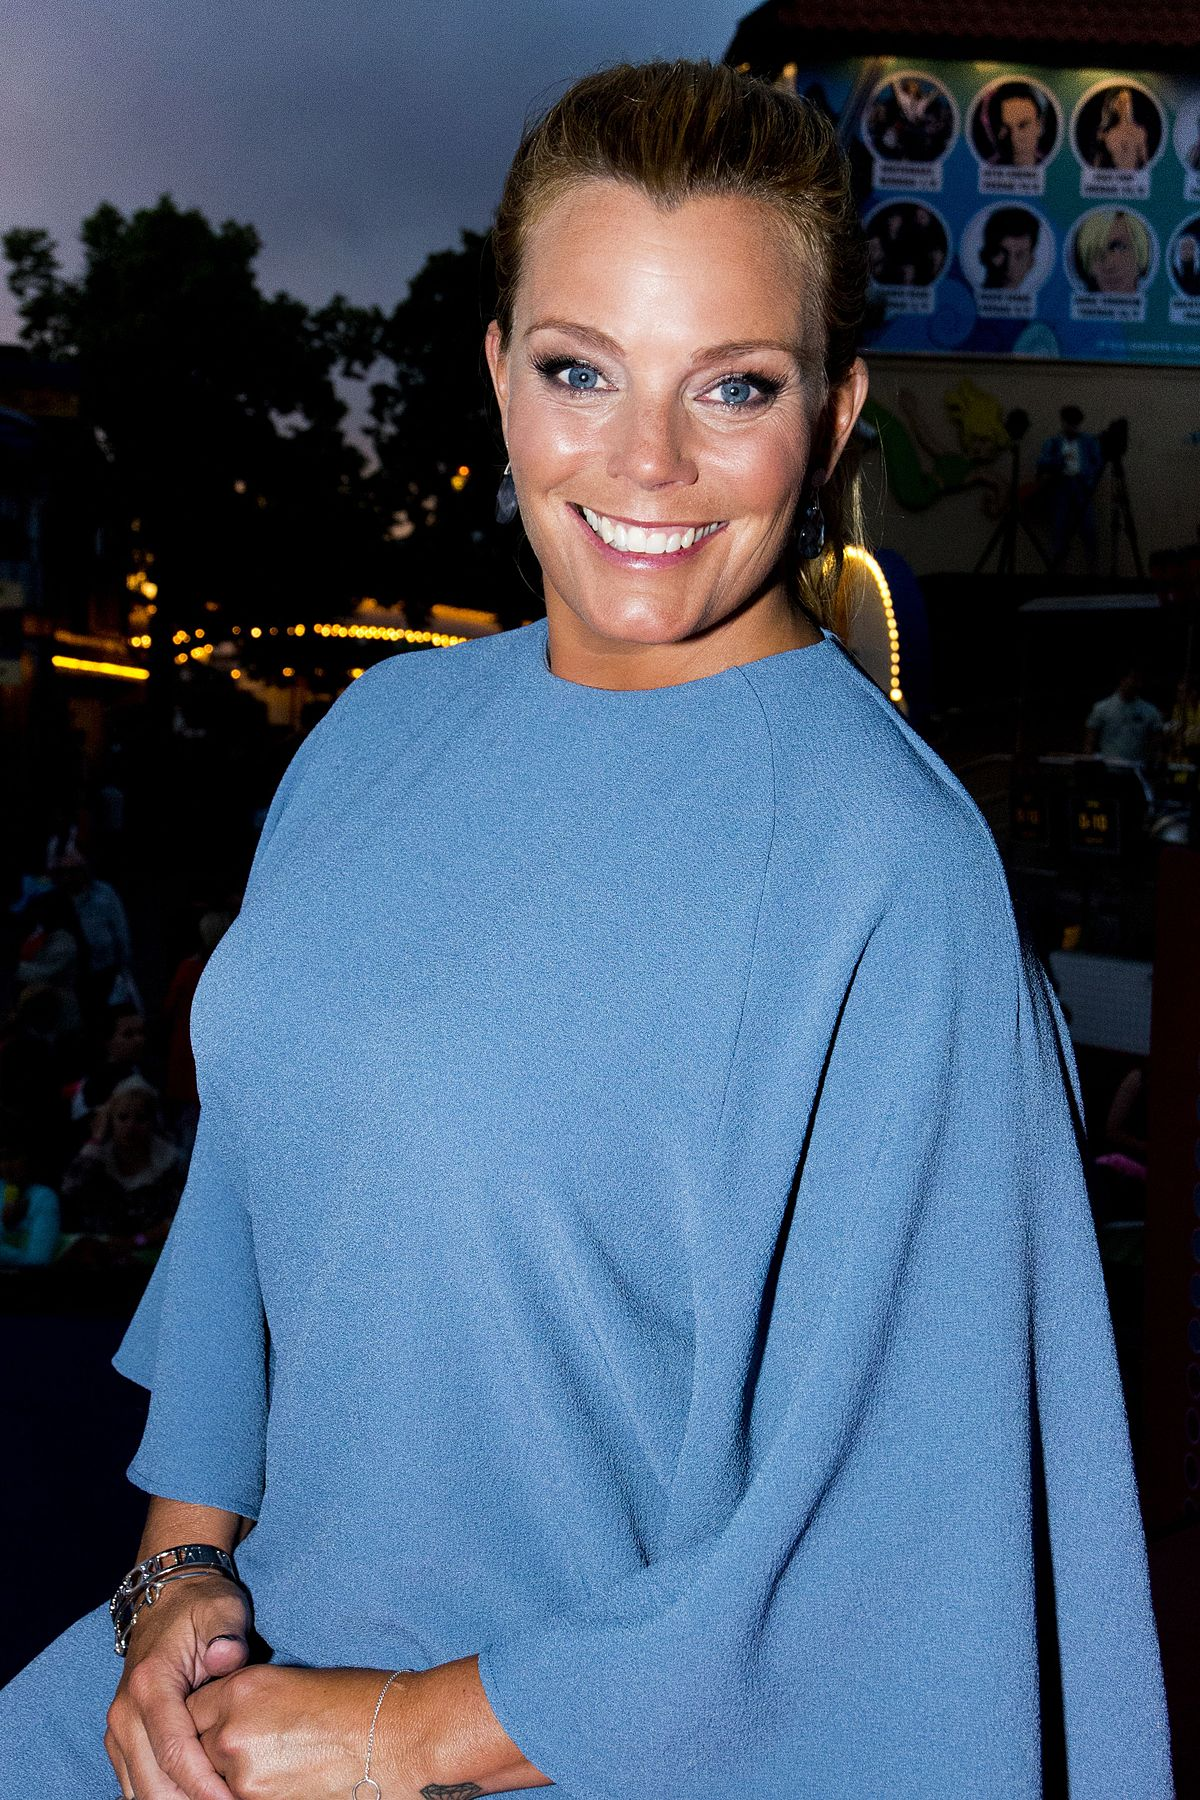 Gry Forssell Wikipedia